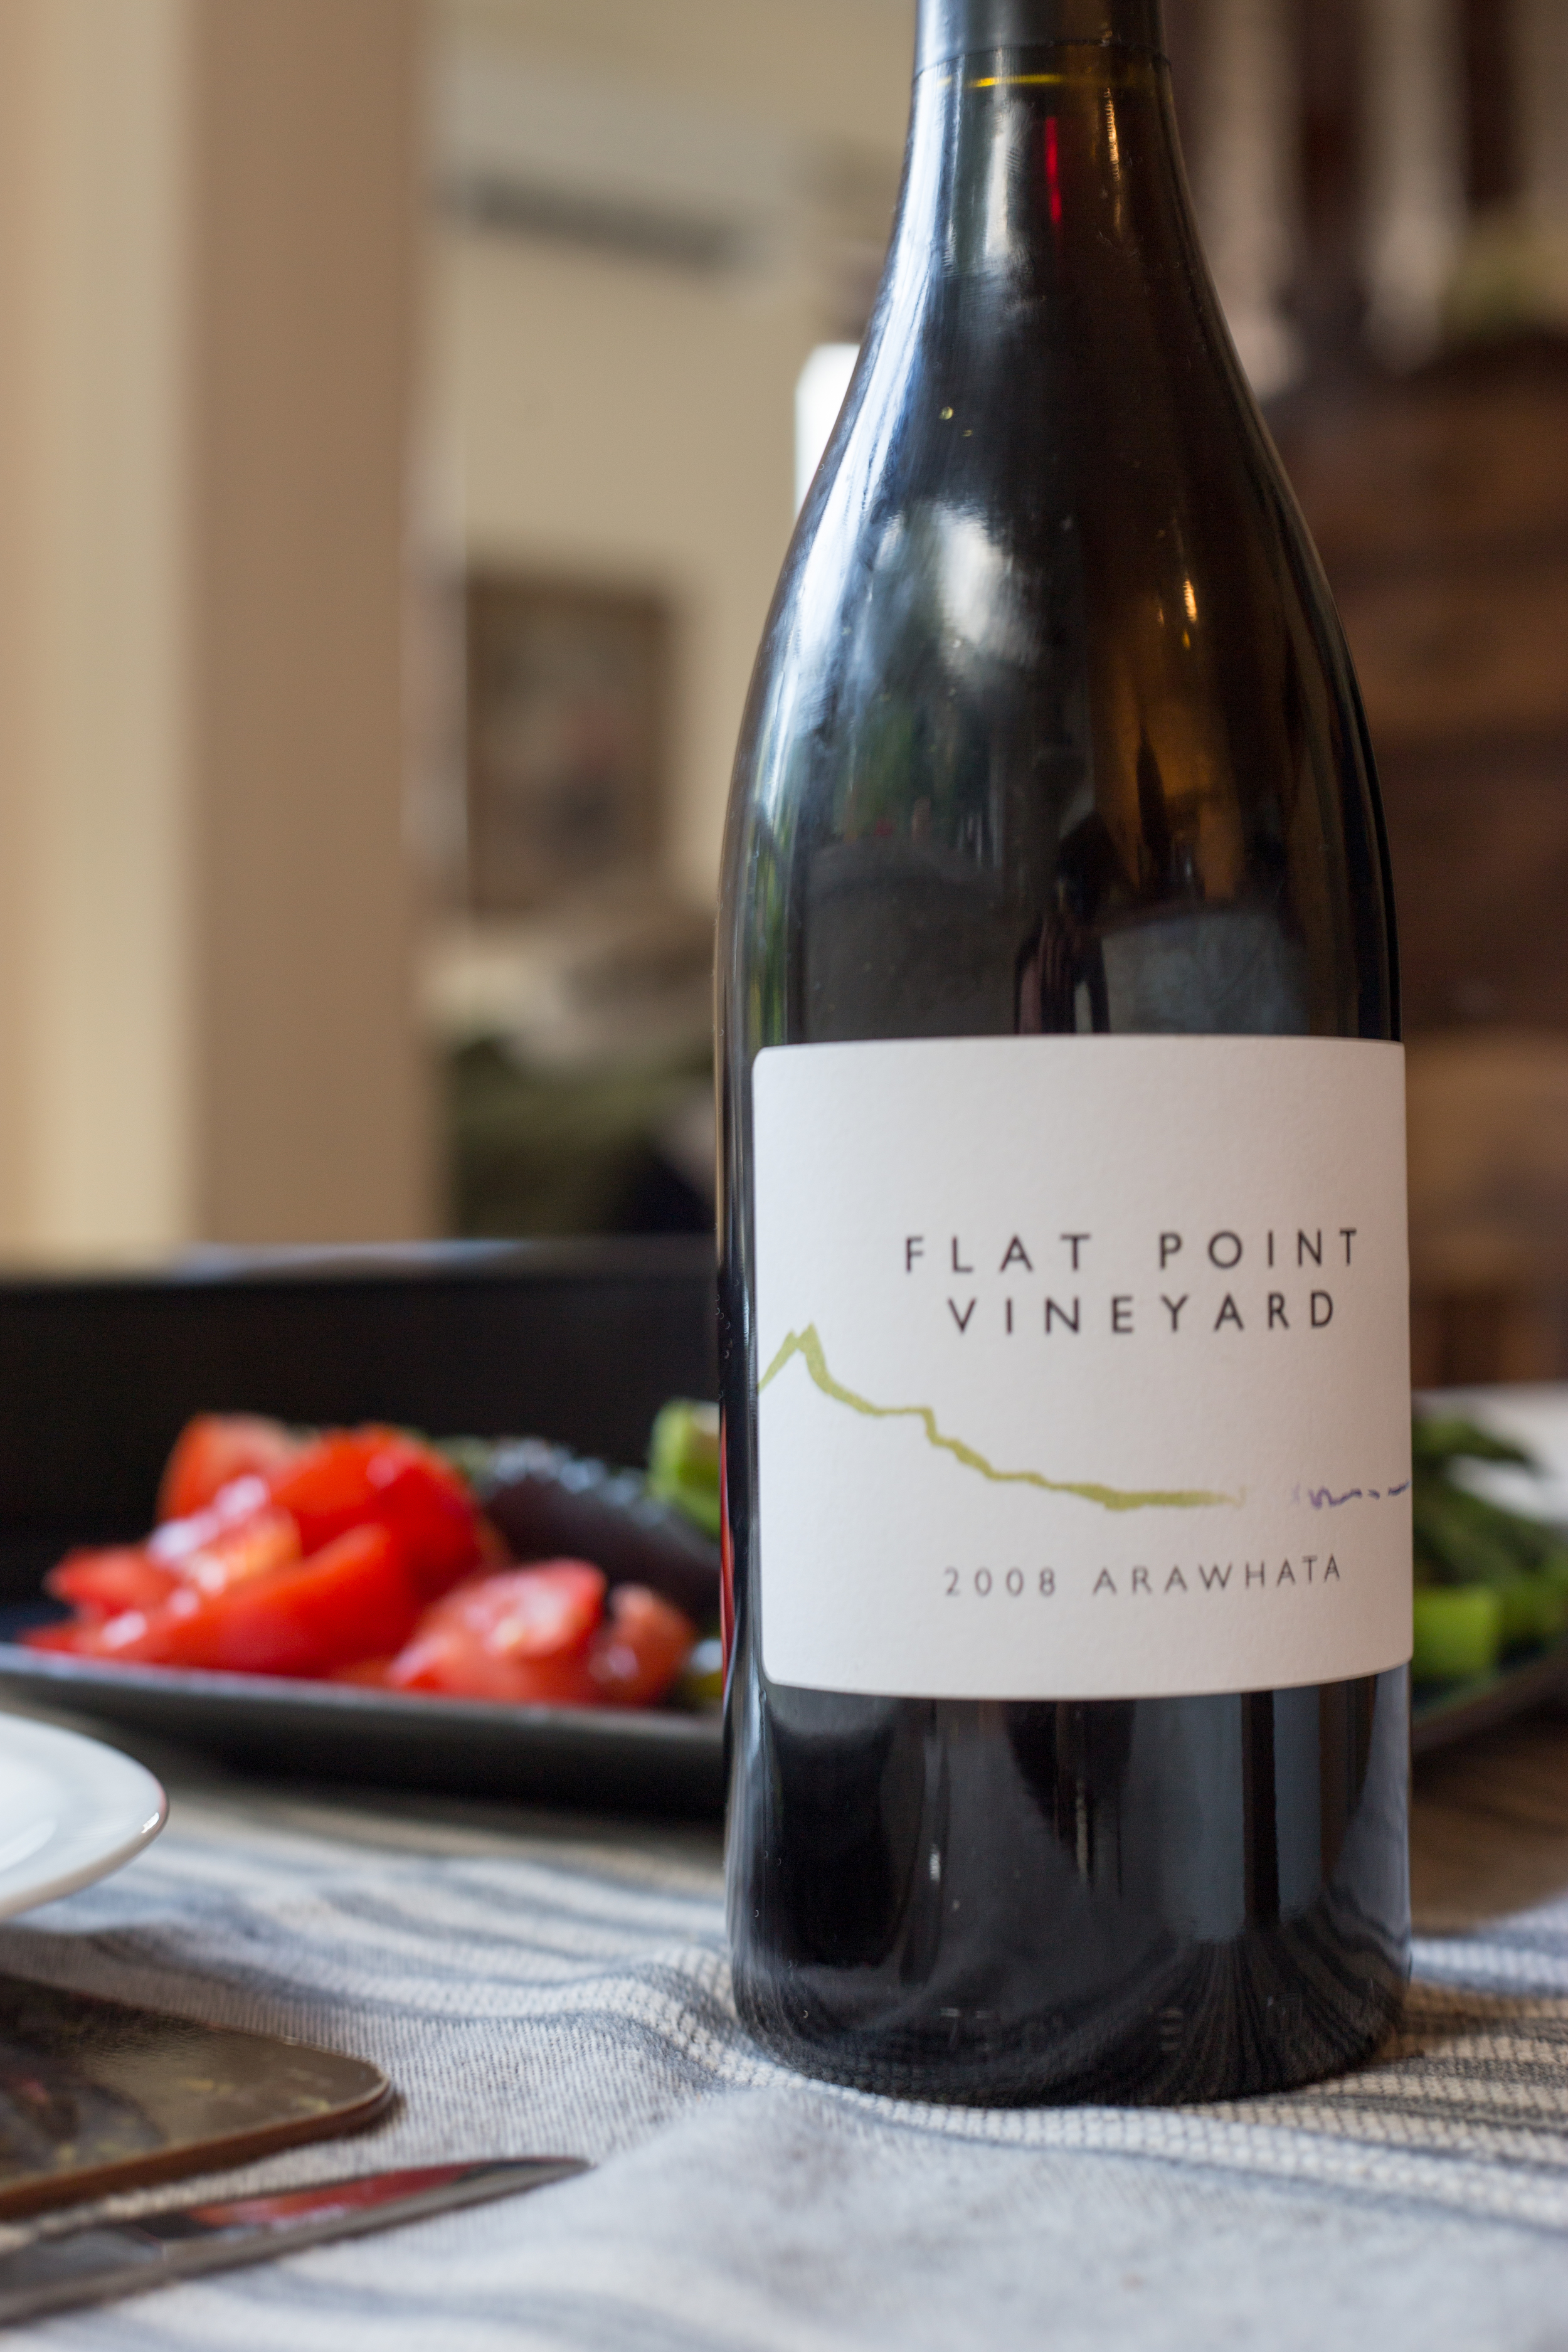 The beautiful wine from Flat Point